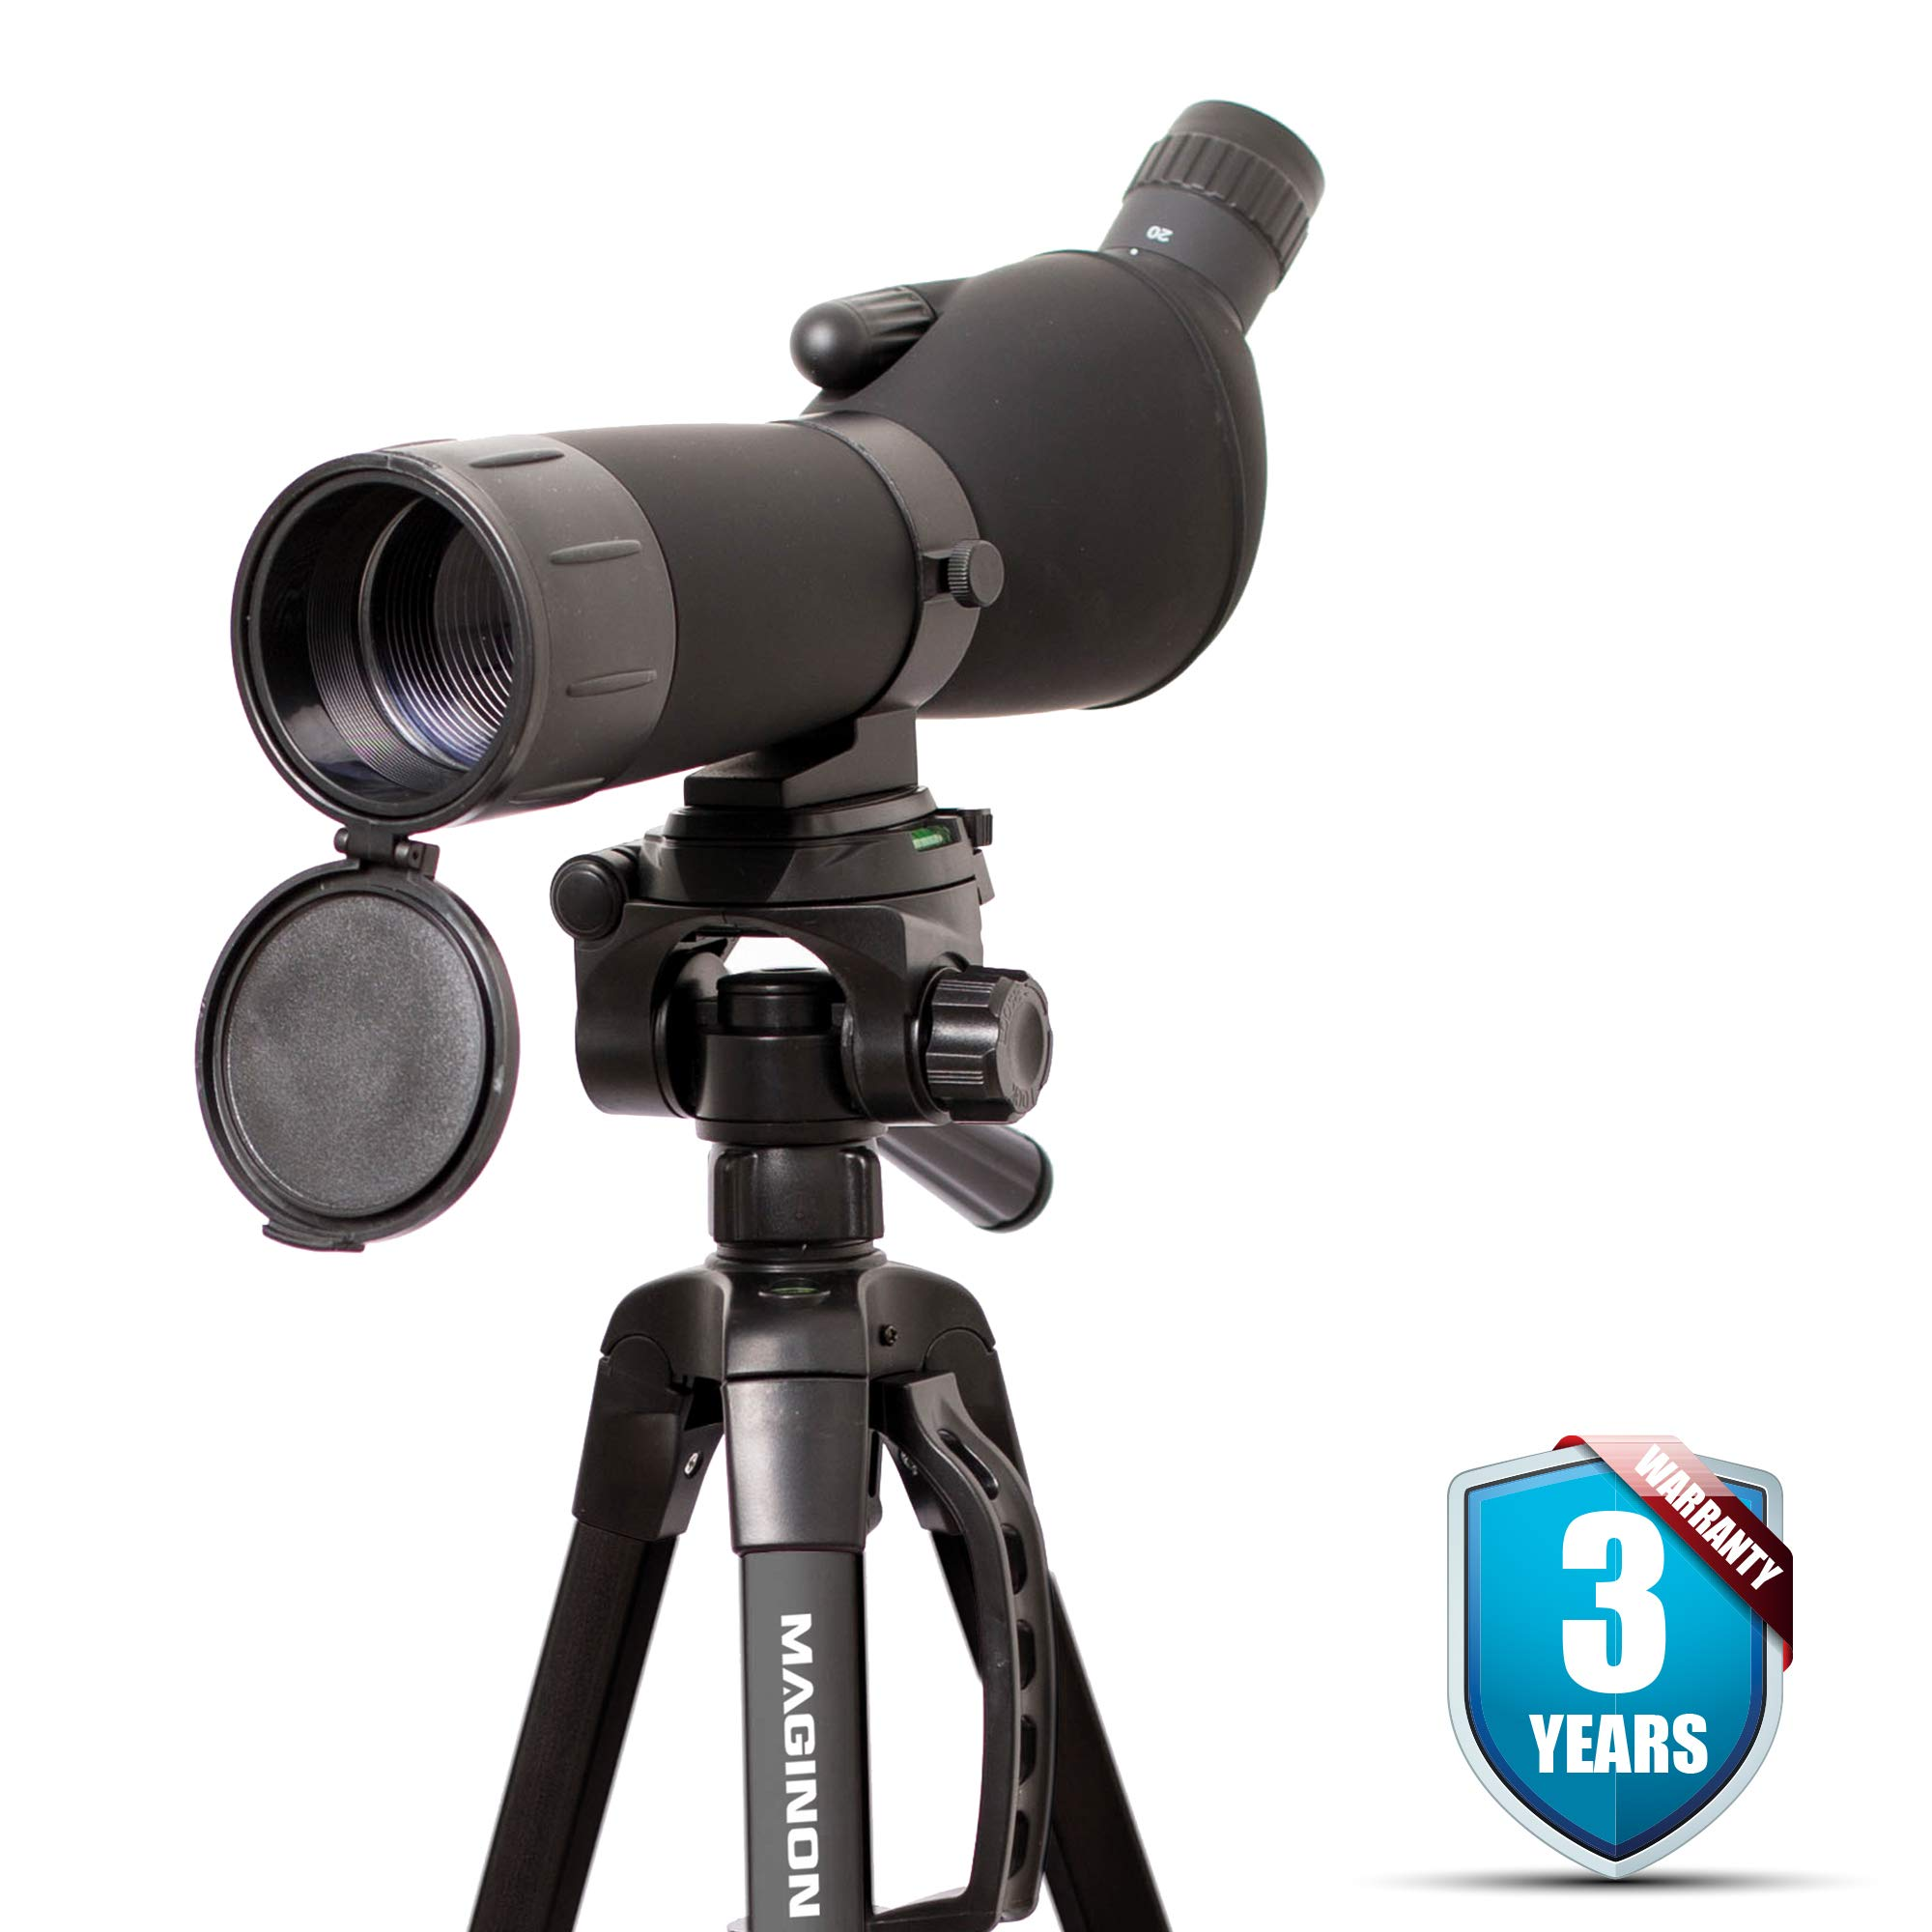 Maginon Hi Definition Spotting Scope with Tripod 20-60x60 Zoom for Bird Watching Target Shooting or Hunting